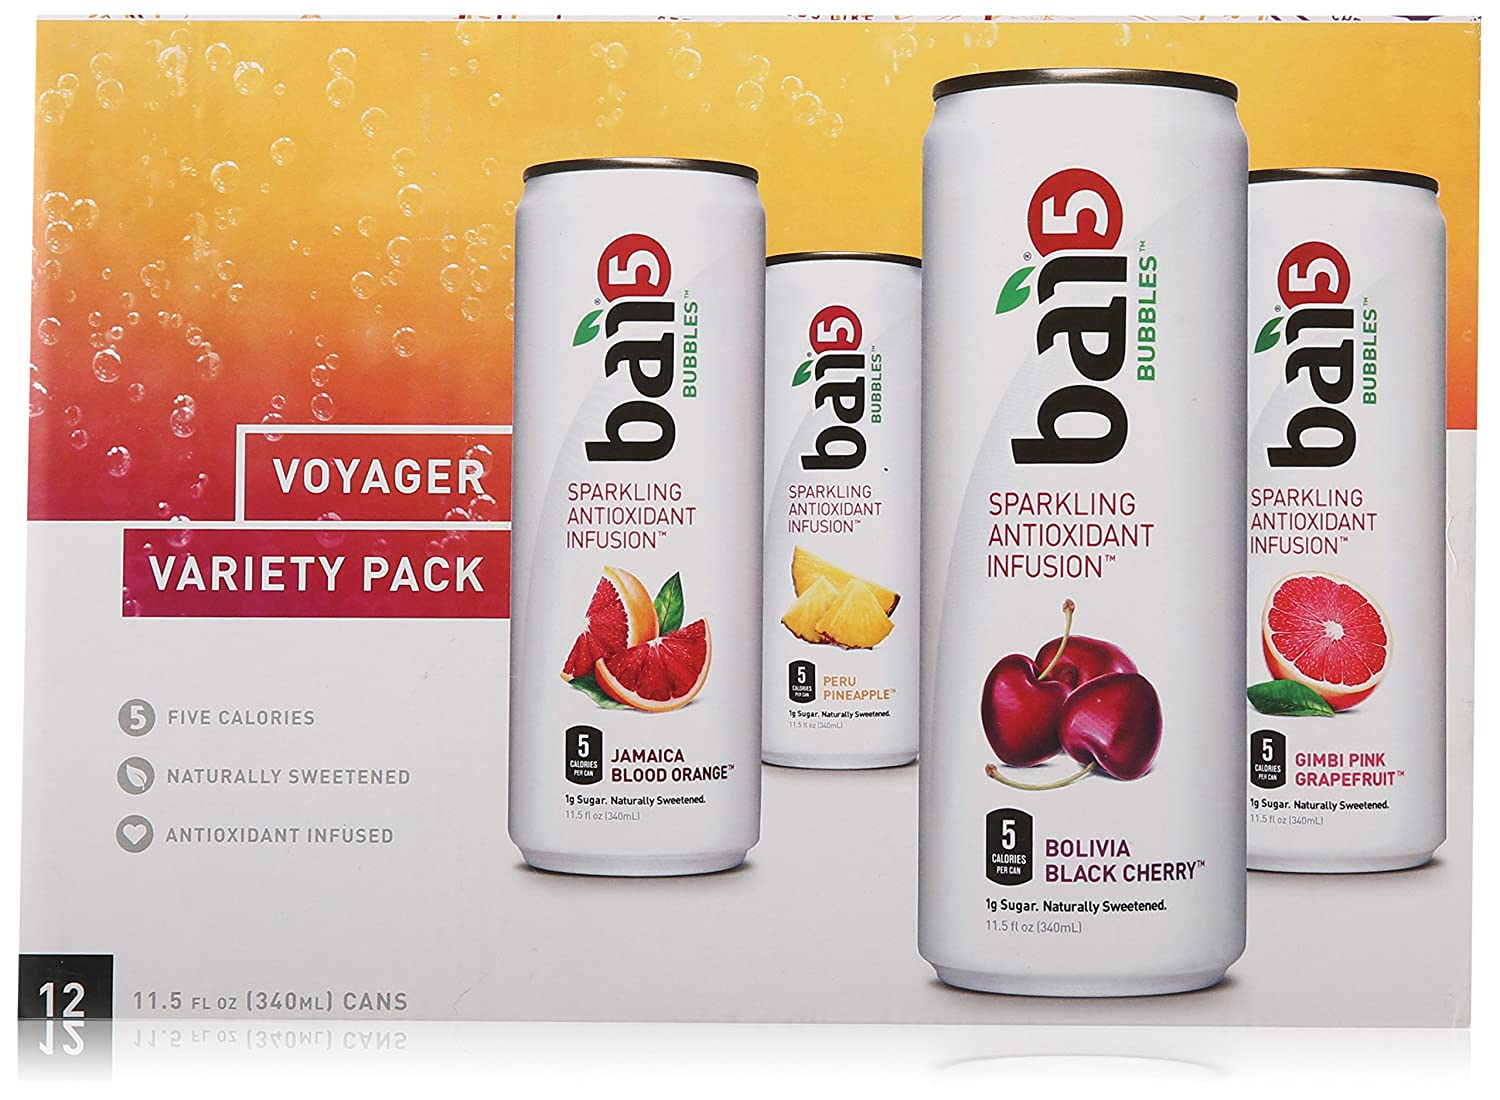 Bai Bubbles Variety Pack, 5-calorie, Naturally Sweetened, Antioxidant Infused Sparkling Beverage 11.5oz Can (Pack of 12)